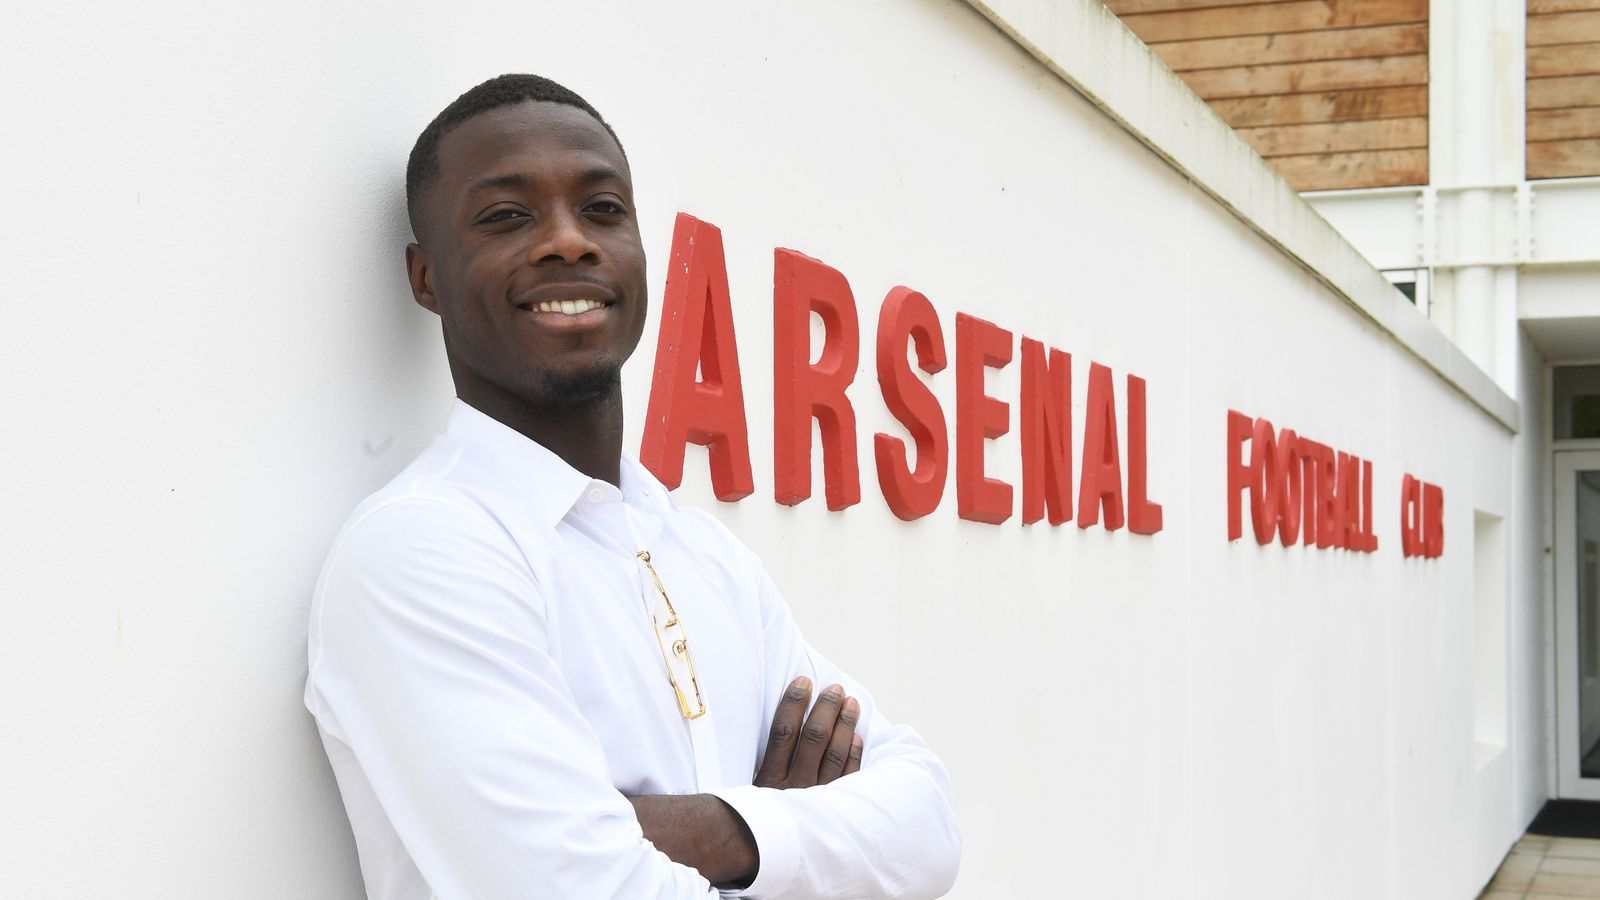 Nicolas Pepe: All you need to know about Arsenal's new